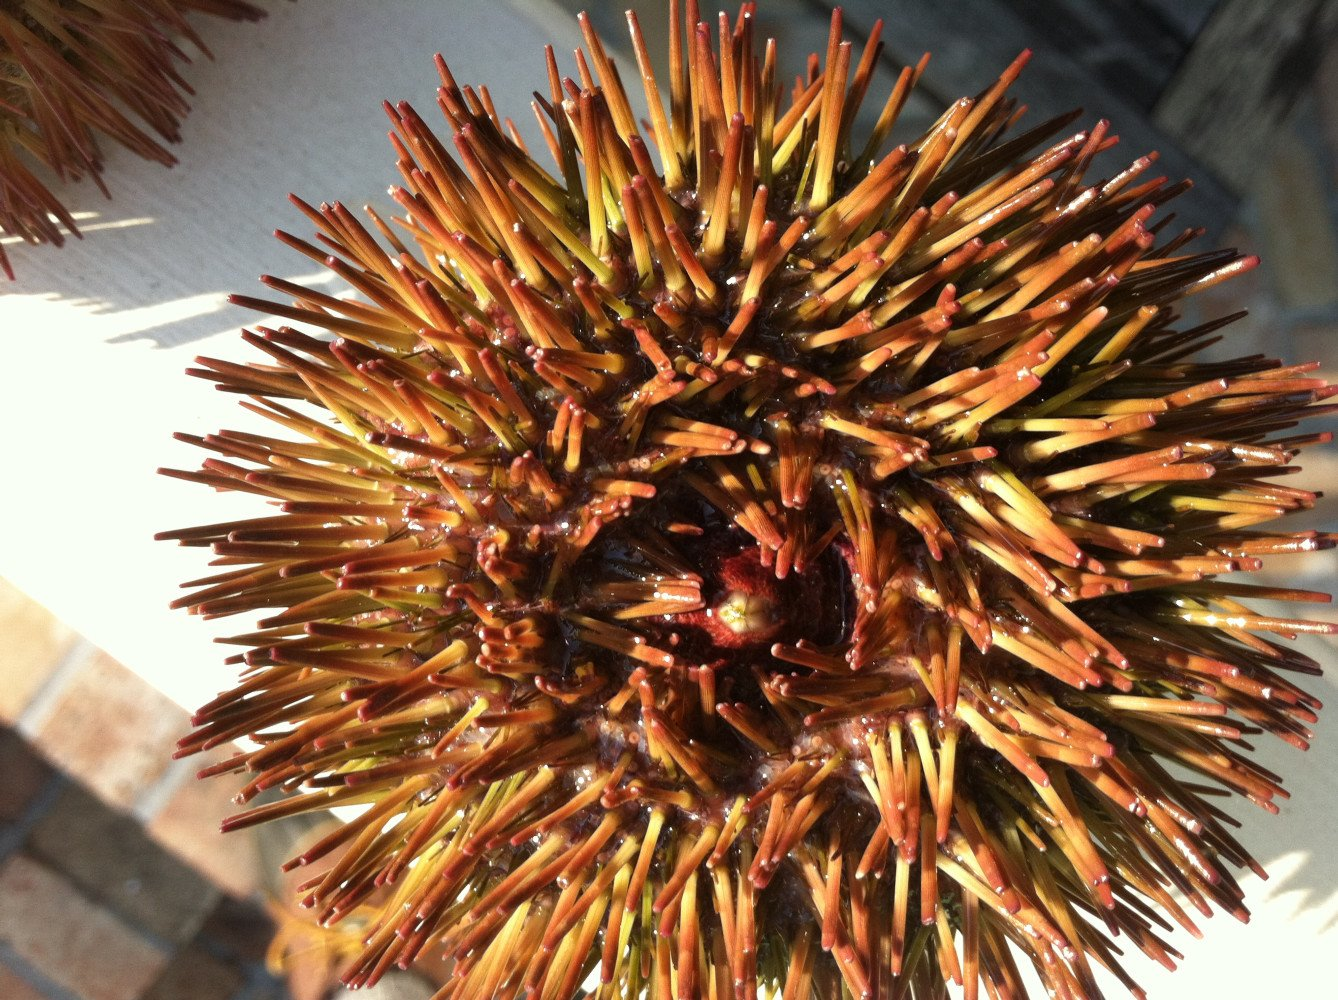 SEA URCHIN OFFER COMMERCIAL OPPORTUNITIES AND ALSO AN PLAY AN IMPORTANT ROLE IN OUR CORAL REEF AND SEA FLOOR ENVIRONMENTS  (Lytechinus variegatus)